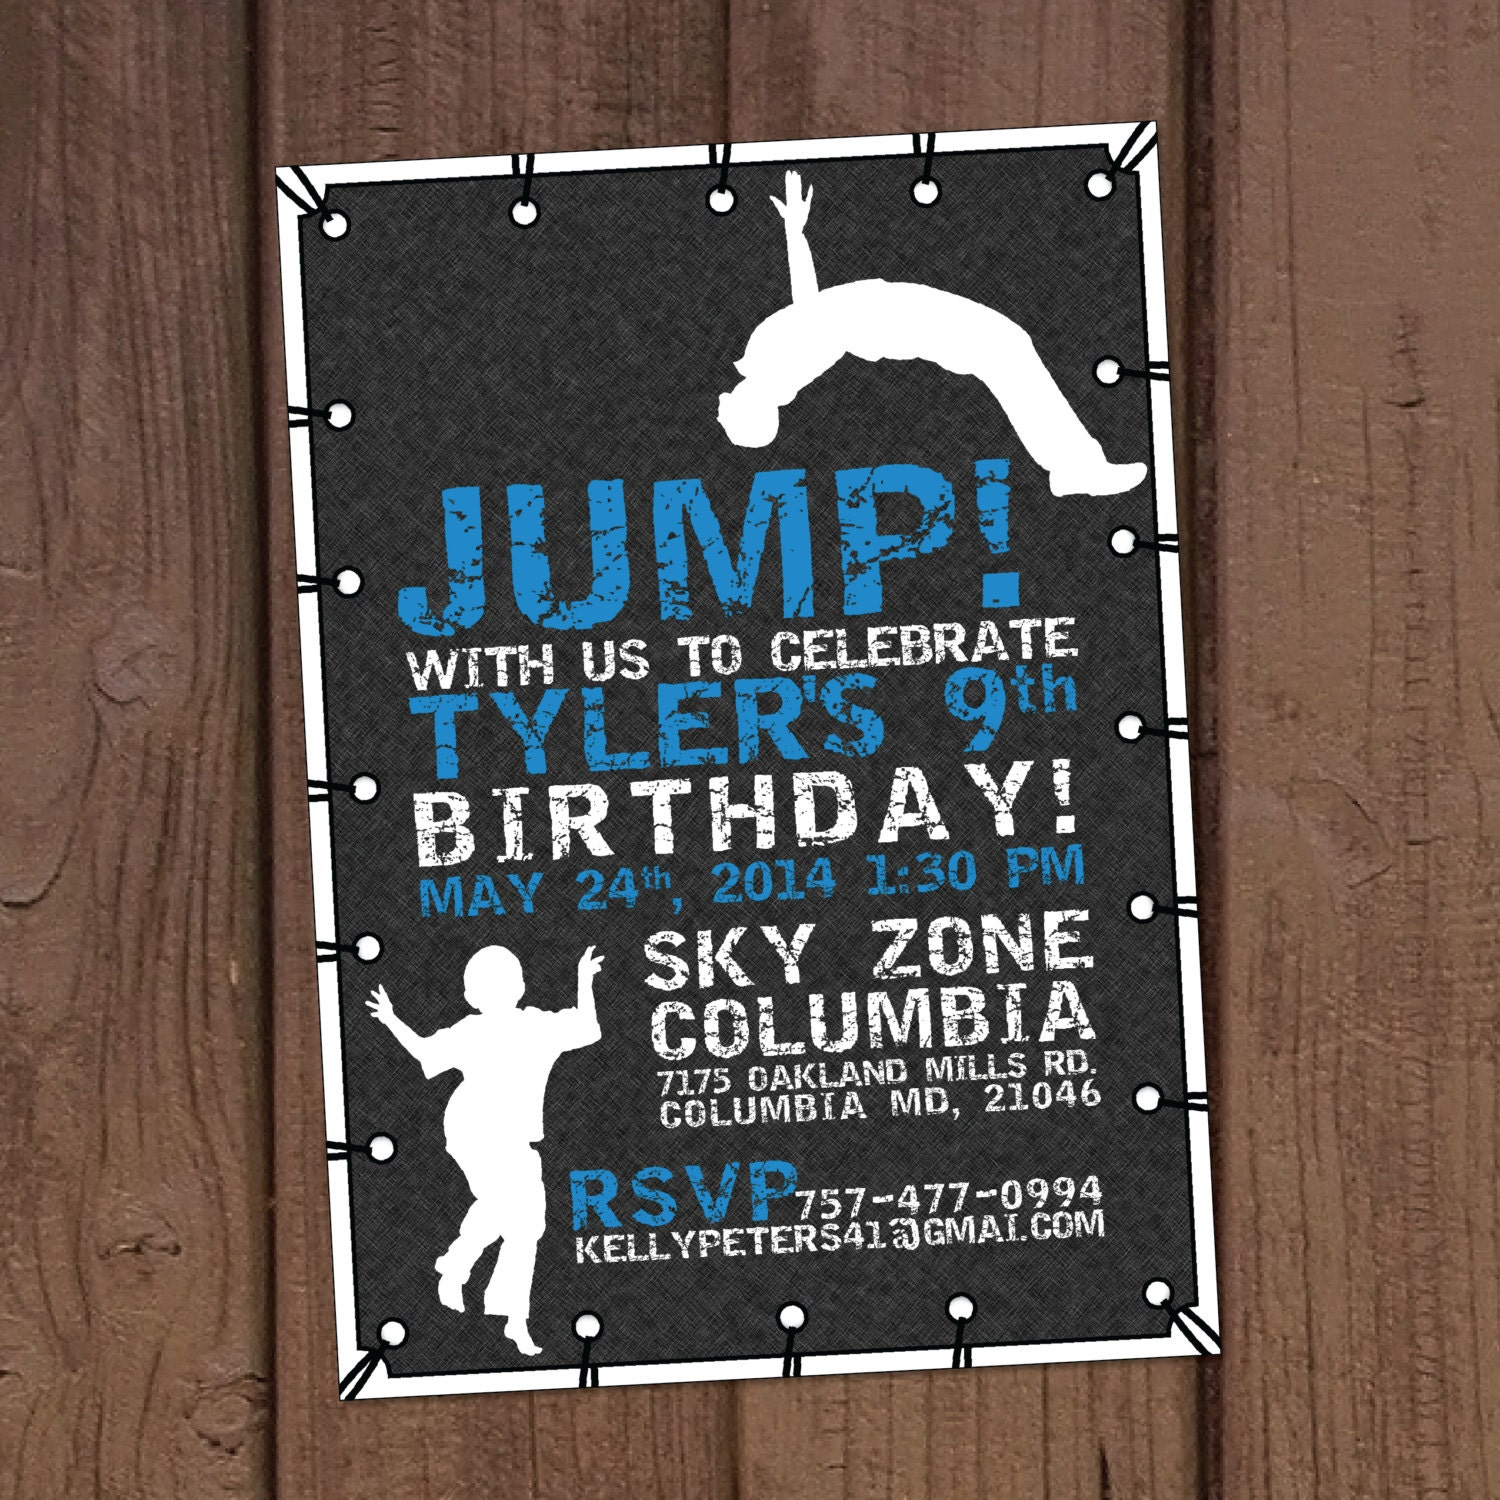 Trampoline Party Invitations: Jump Trampoline Park Birthday Party Invitation